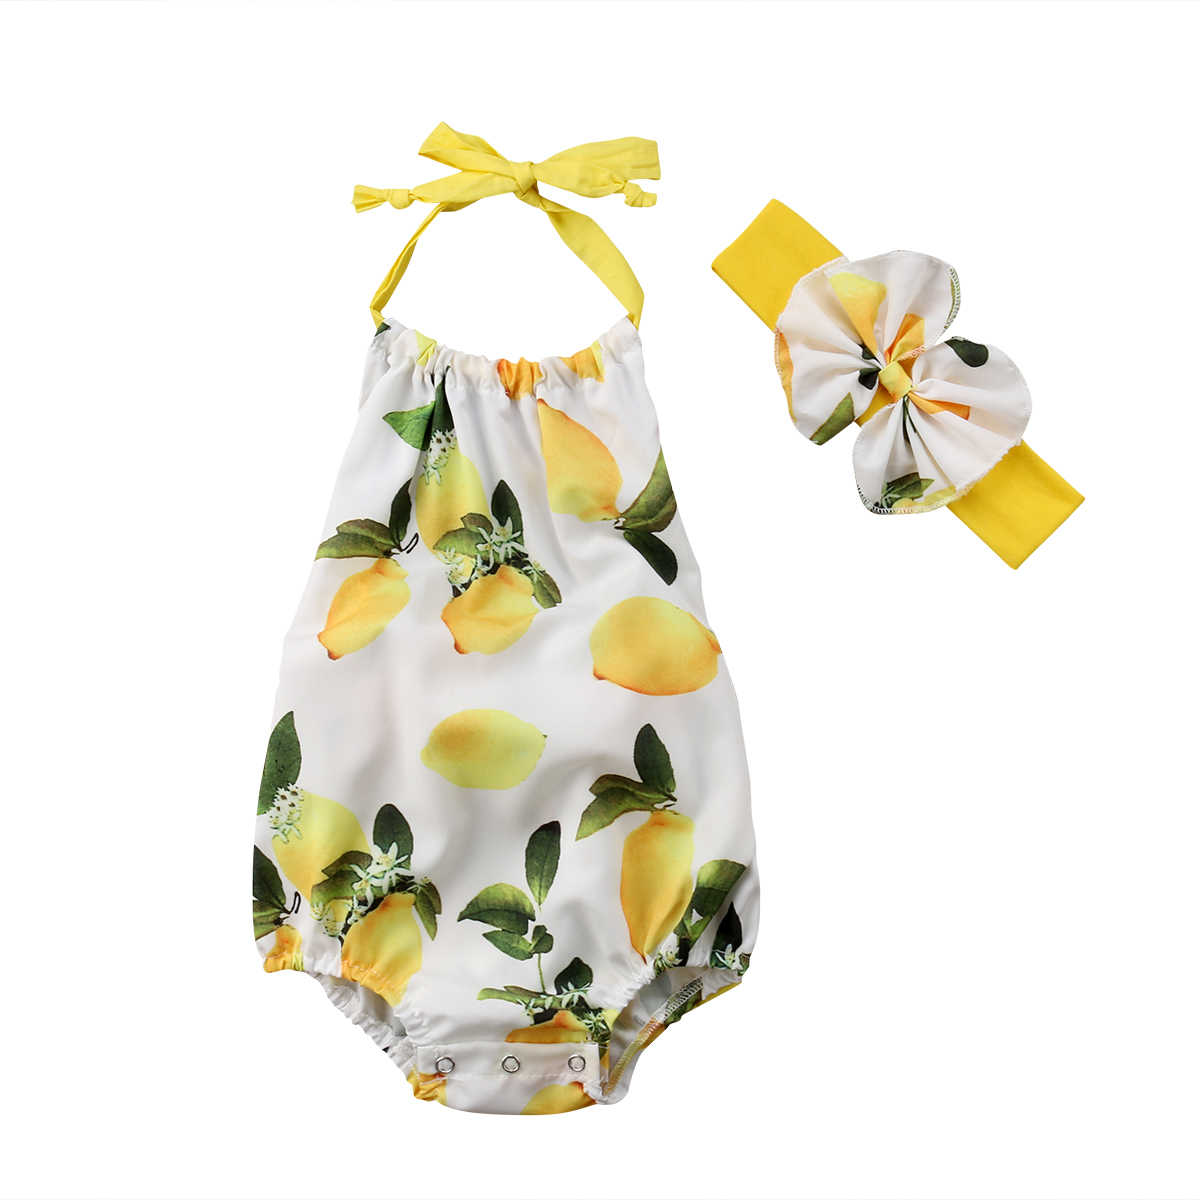 cceffa68b Detail Feedback Questions about Emmababy Lovely Newborn Infant Baby ...